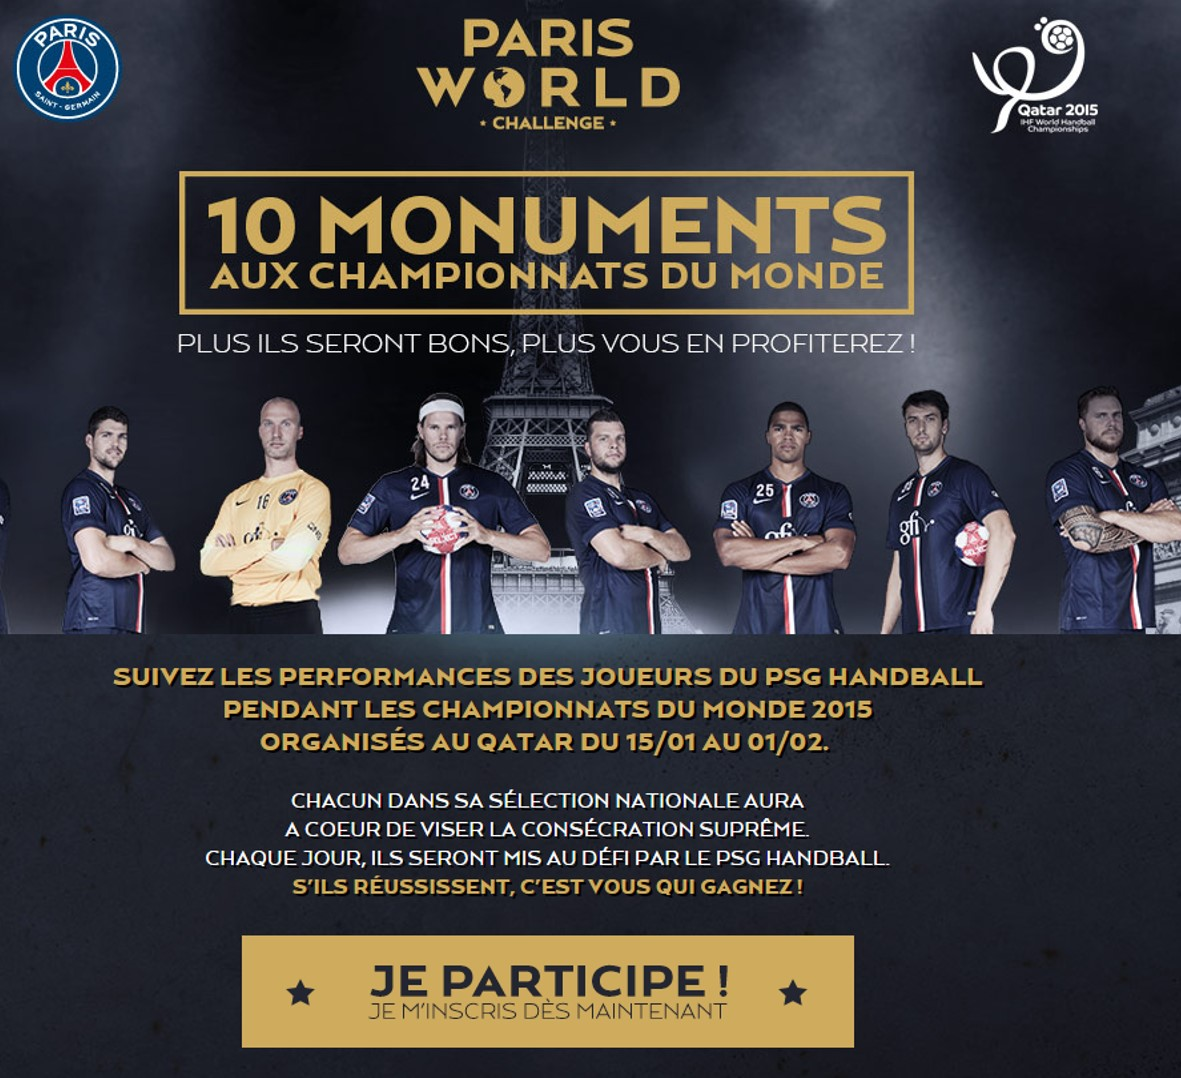 PARIS WORLD CHALLENGE - PSG HAND 2015 Qatar Visuel retravaillé - Go with the Blog